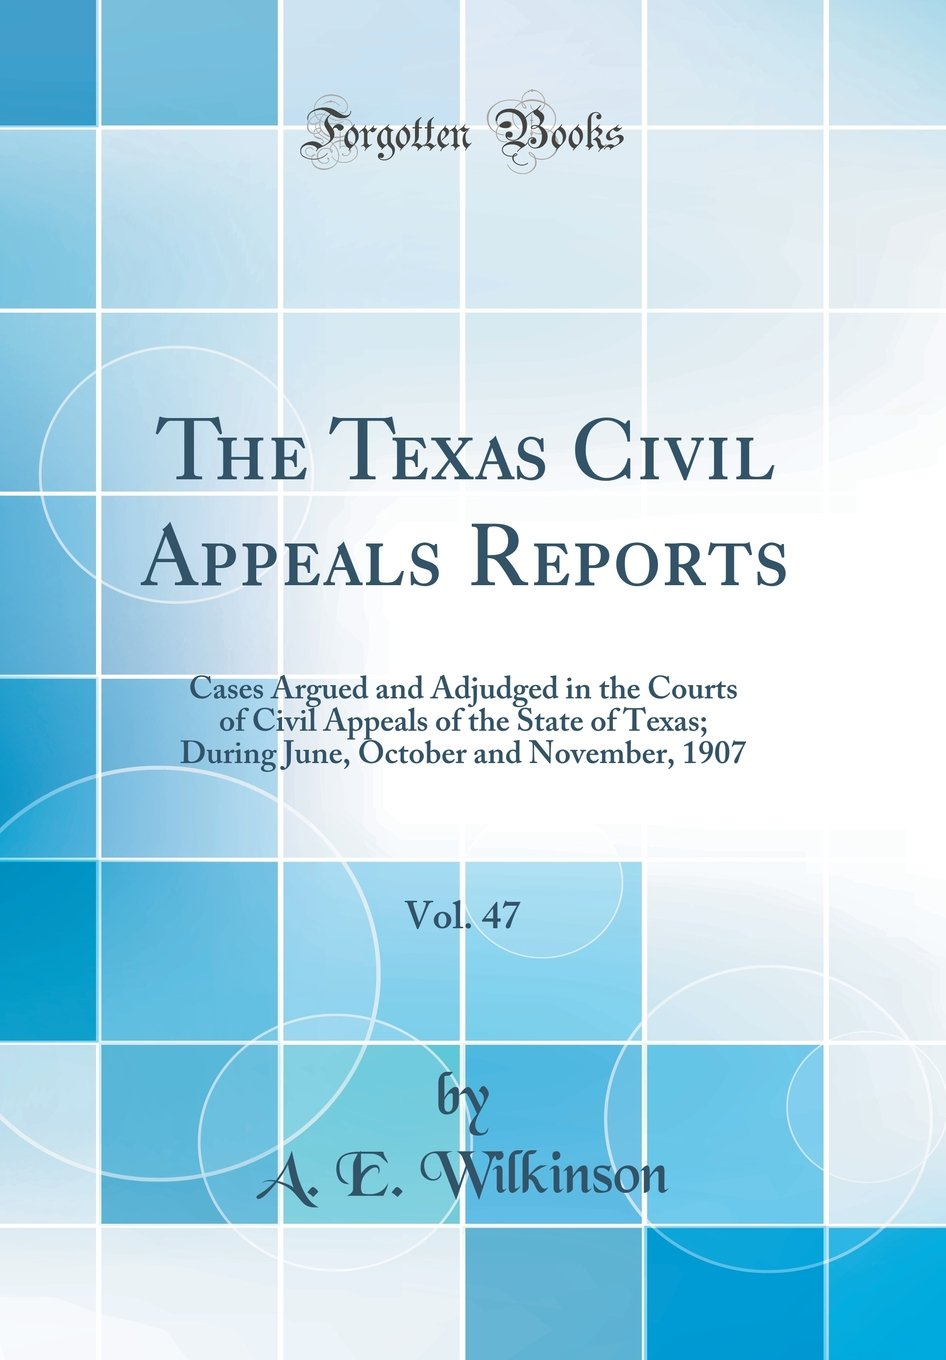 Read Online The Texas Civil Appeals Reports, Vol. 47: Cases Argued and Adjudged in the Courts of Civil Appeals of the State of Texas; During June, October and November, 1907 (Classic Reprint) PDF